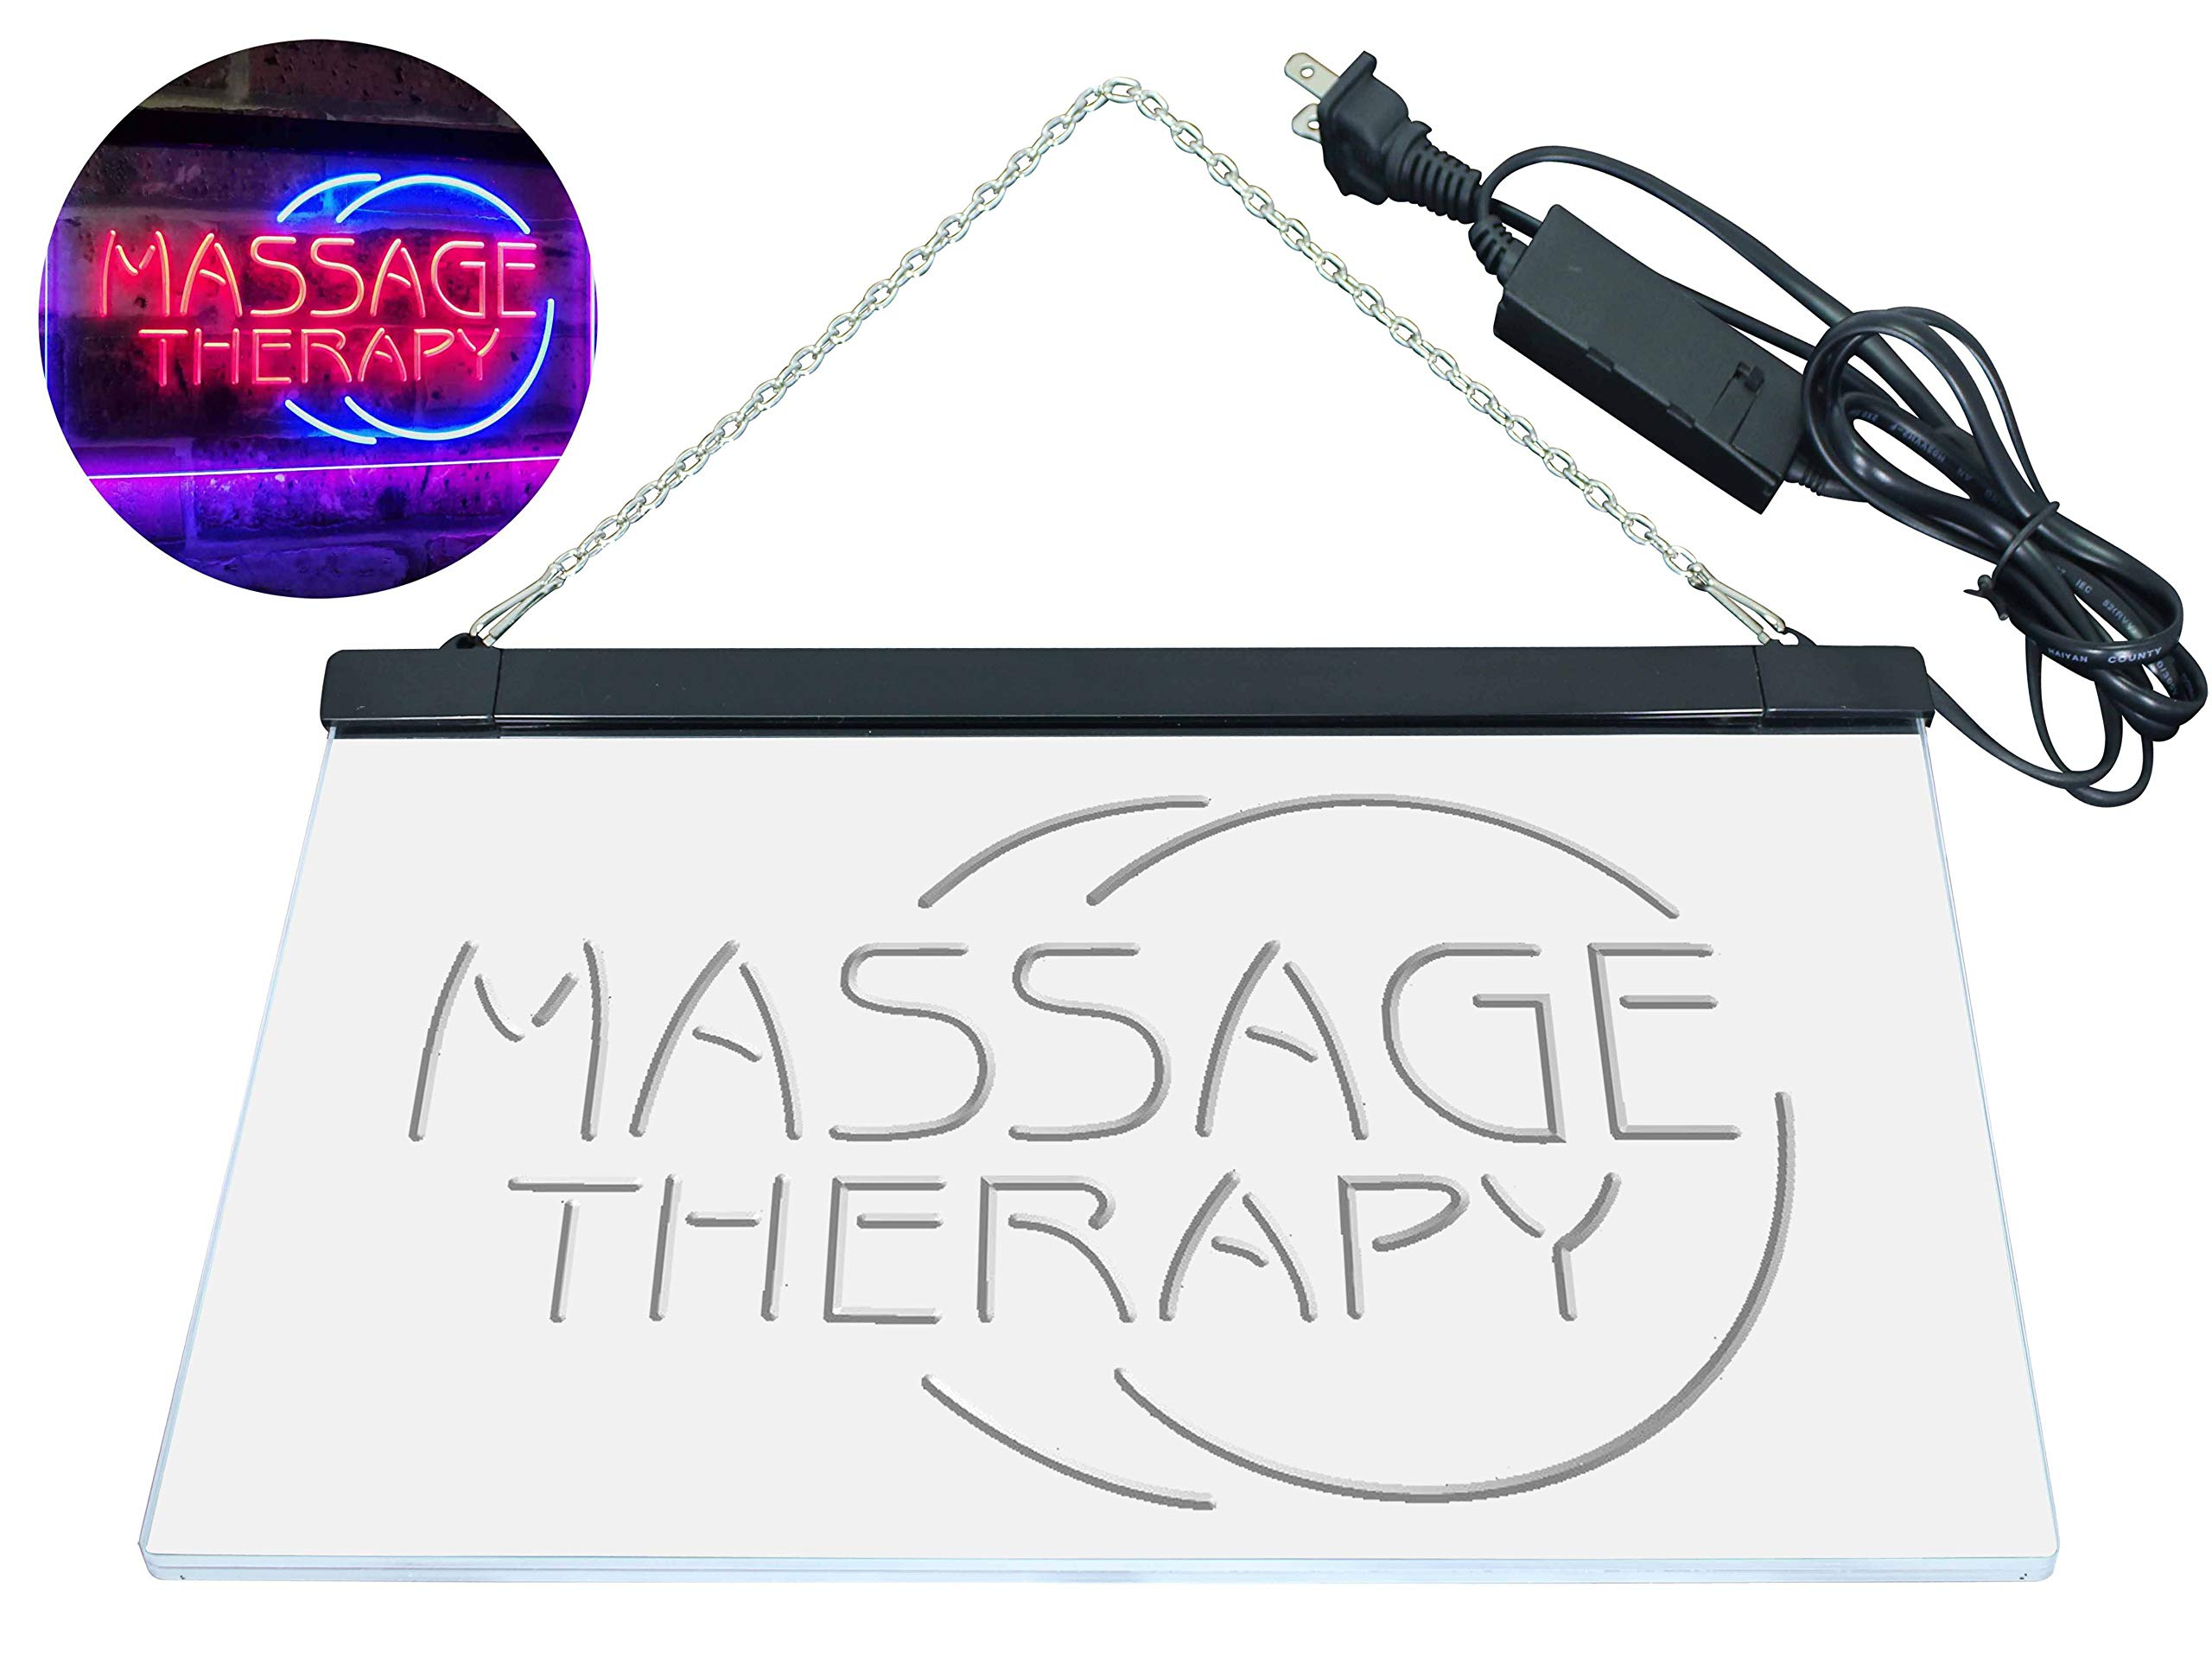 AdvpPro 2C Massage Therapy Business Display Dual Color LED Neon Sign Blue & Red 12'' x 8.5'' st6s32-i0315-br